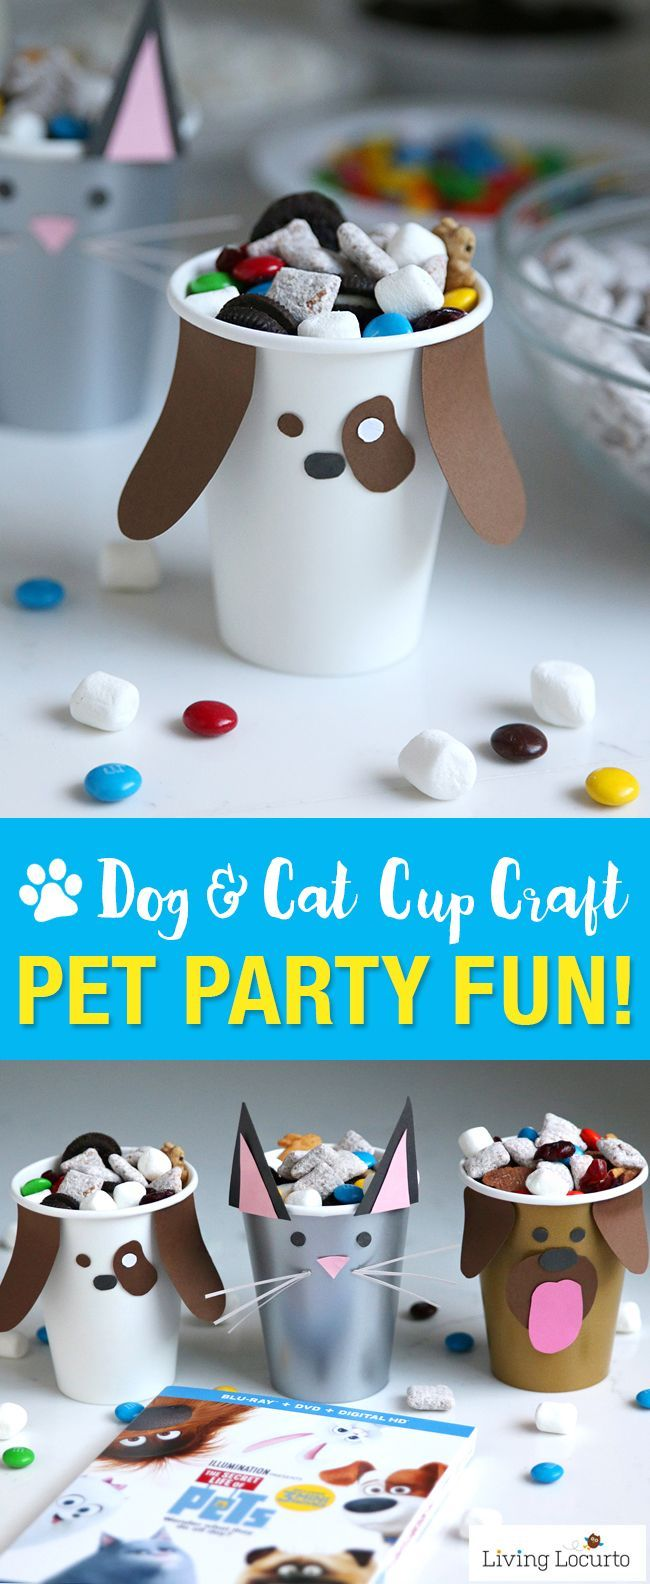 The Secret Life of Pets is now on Blu-ray & DVD! Check out these cute pet party ideas that are perfect for family movie night or a birthday party. The dog and cat paper cup crafts and puppy chow dessert bar make great party activities. #TheSecretLifeOfPets #PetsPack #ad